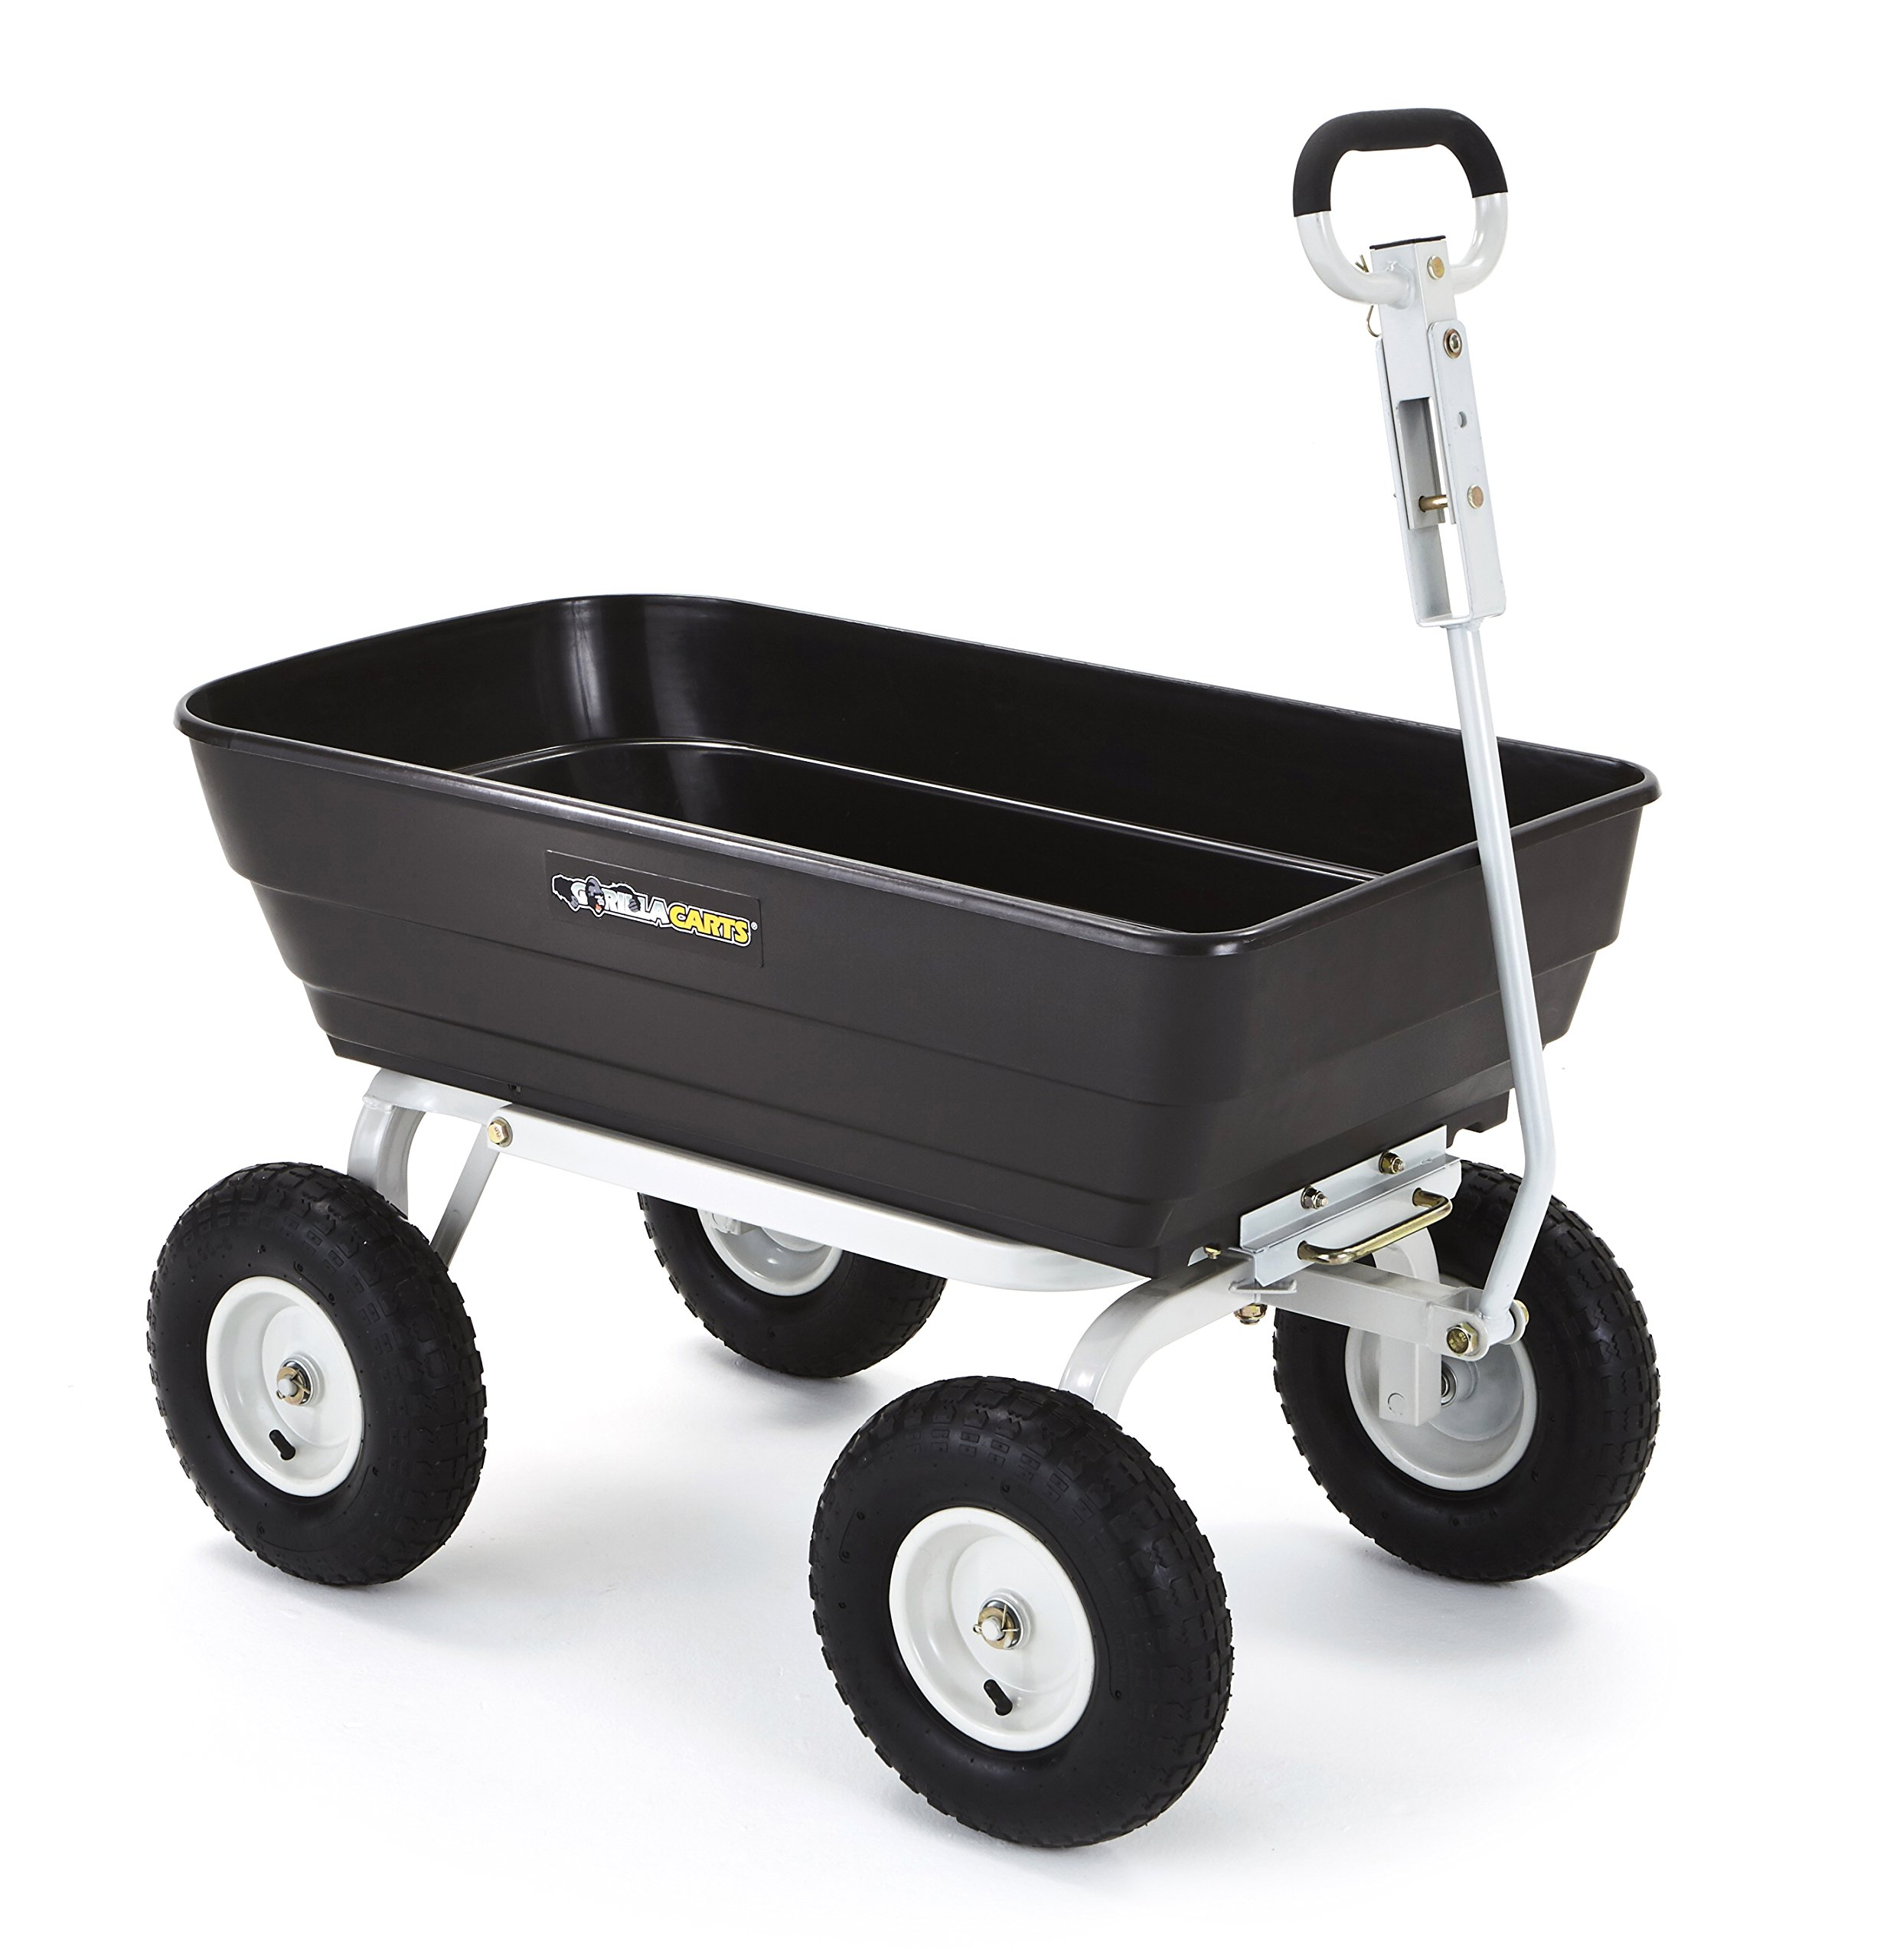 Gorilla Carts Poly Garden Dump Cart with 2-in-1 Convertible Handle with a Capacity of 1000 lb, Black